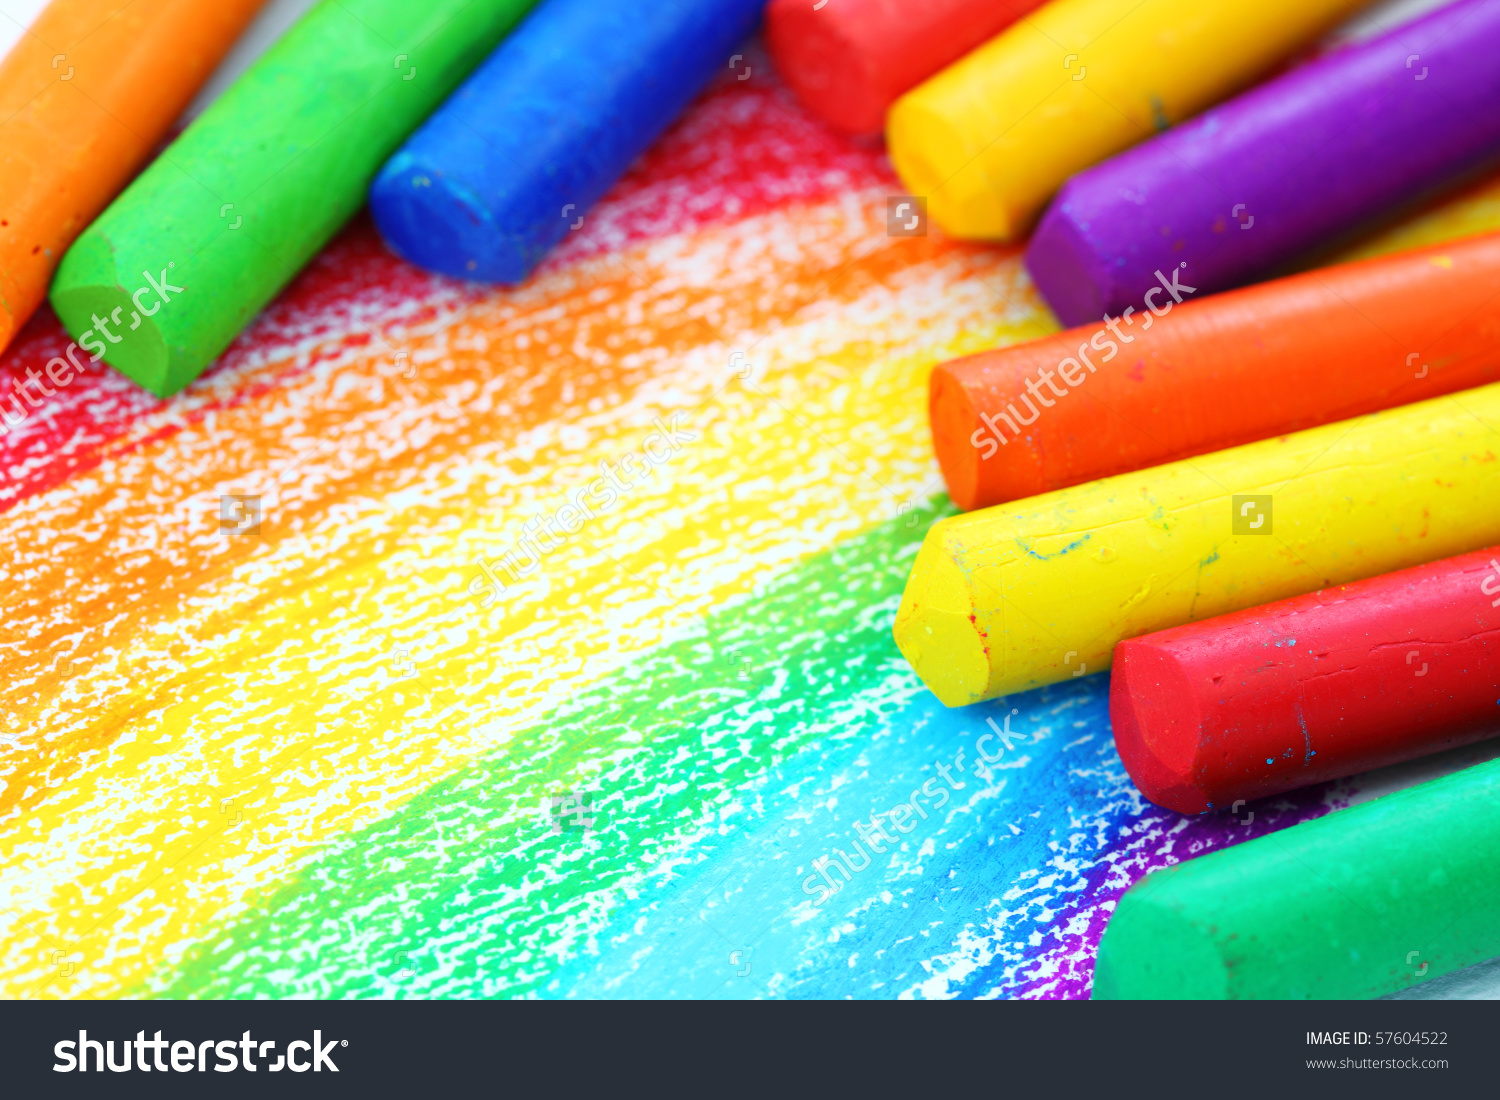 Oil pastel clipart png library stock Oil Pastel Crayons On White Paper Stock Photo 57604522 - Shutterstock png library stock